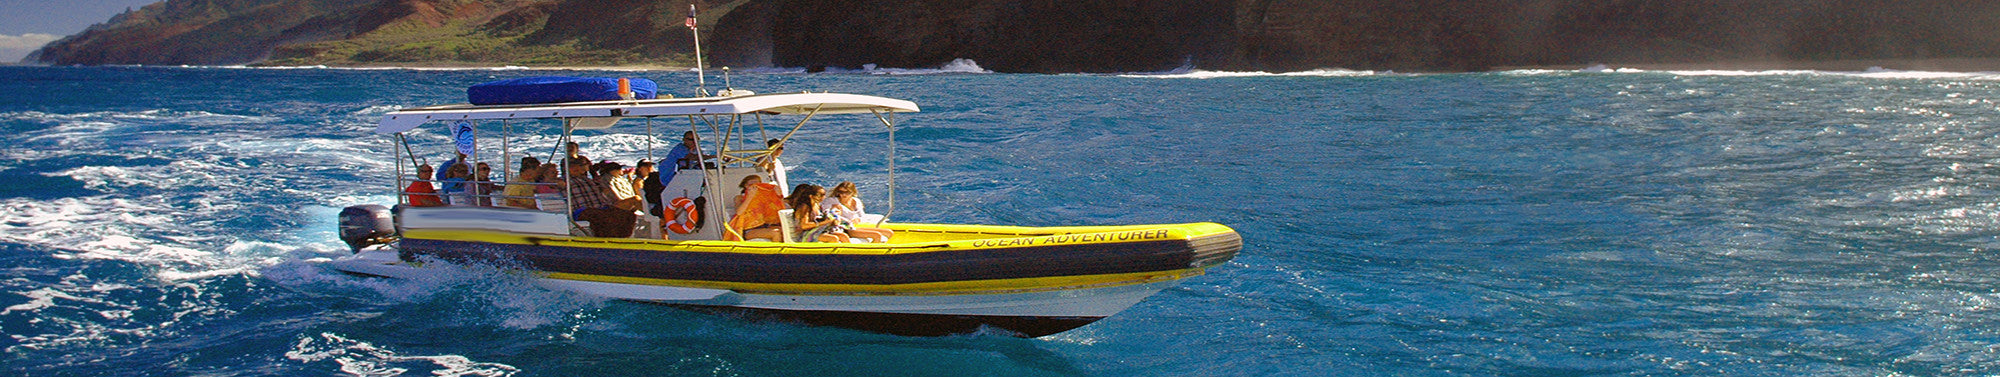 Hawaii Rafting catamaran sailing